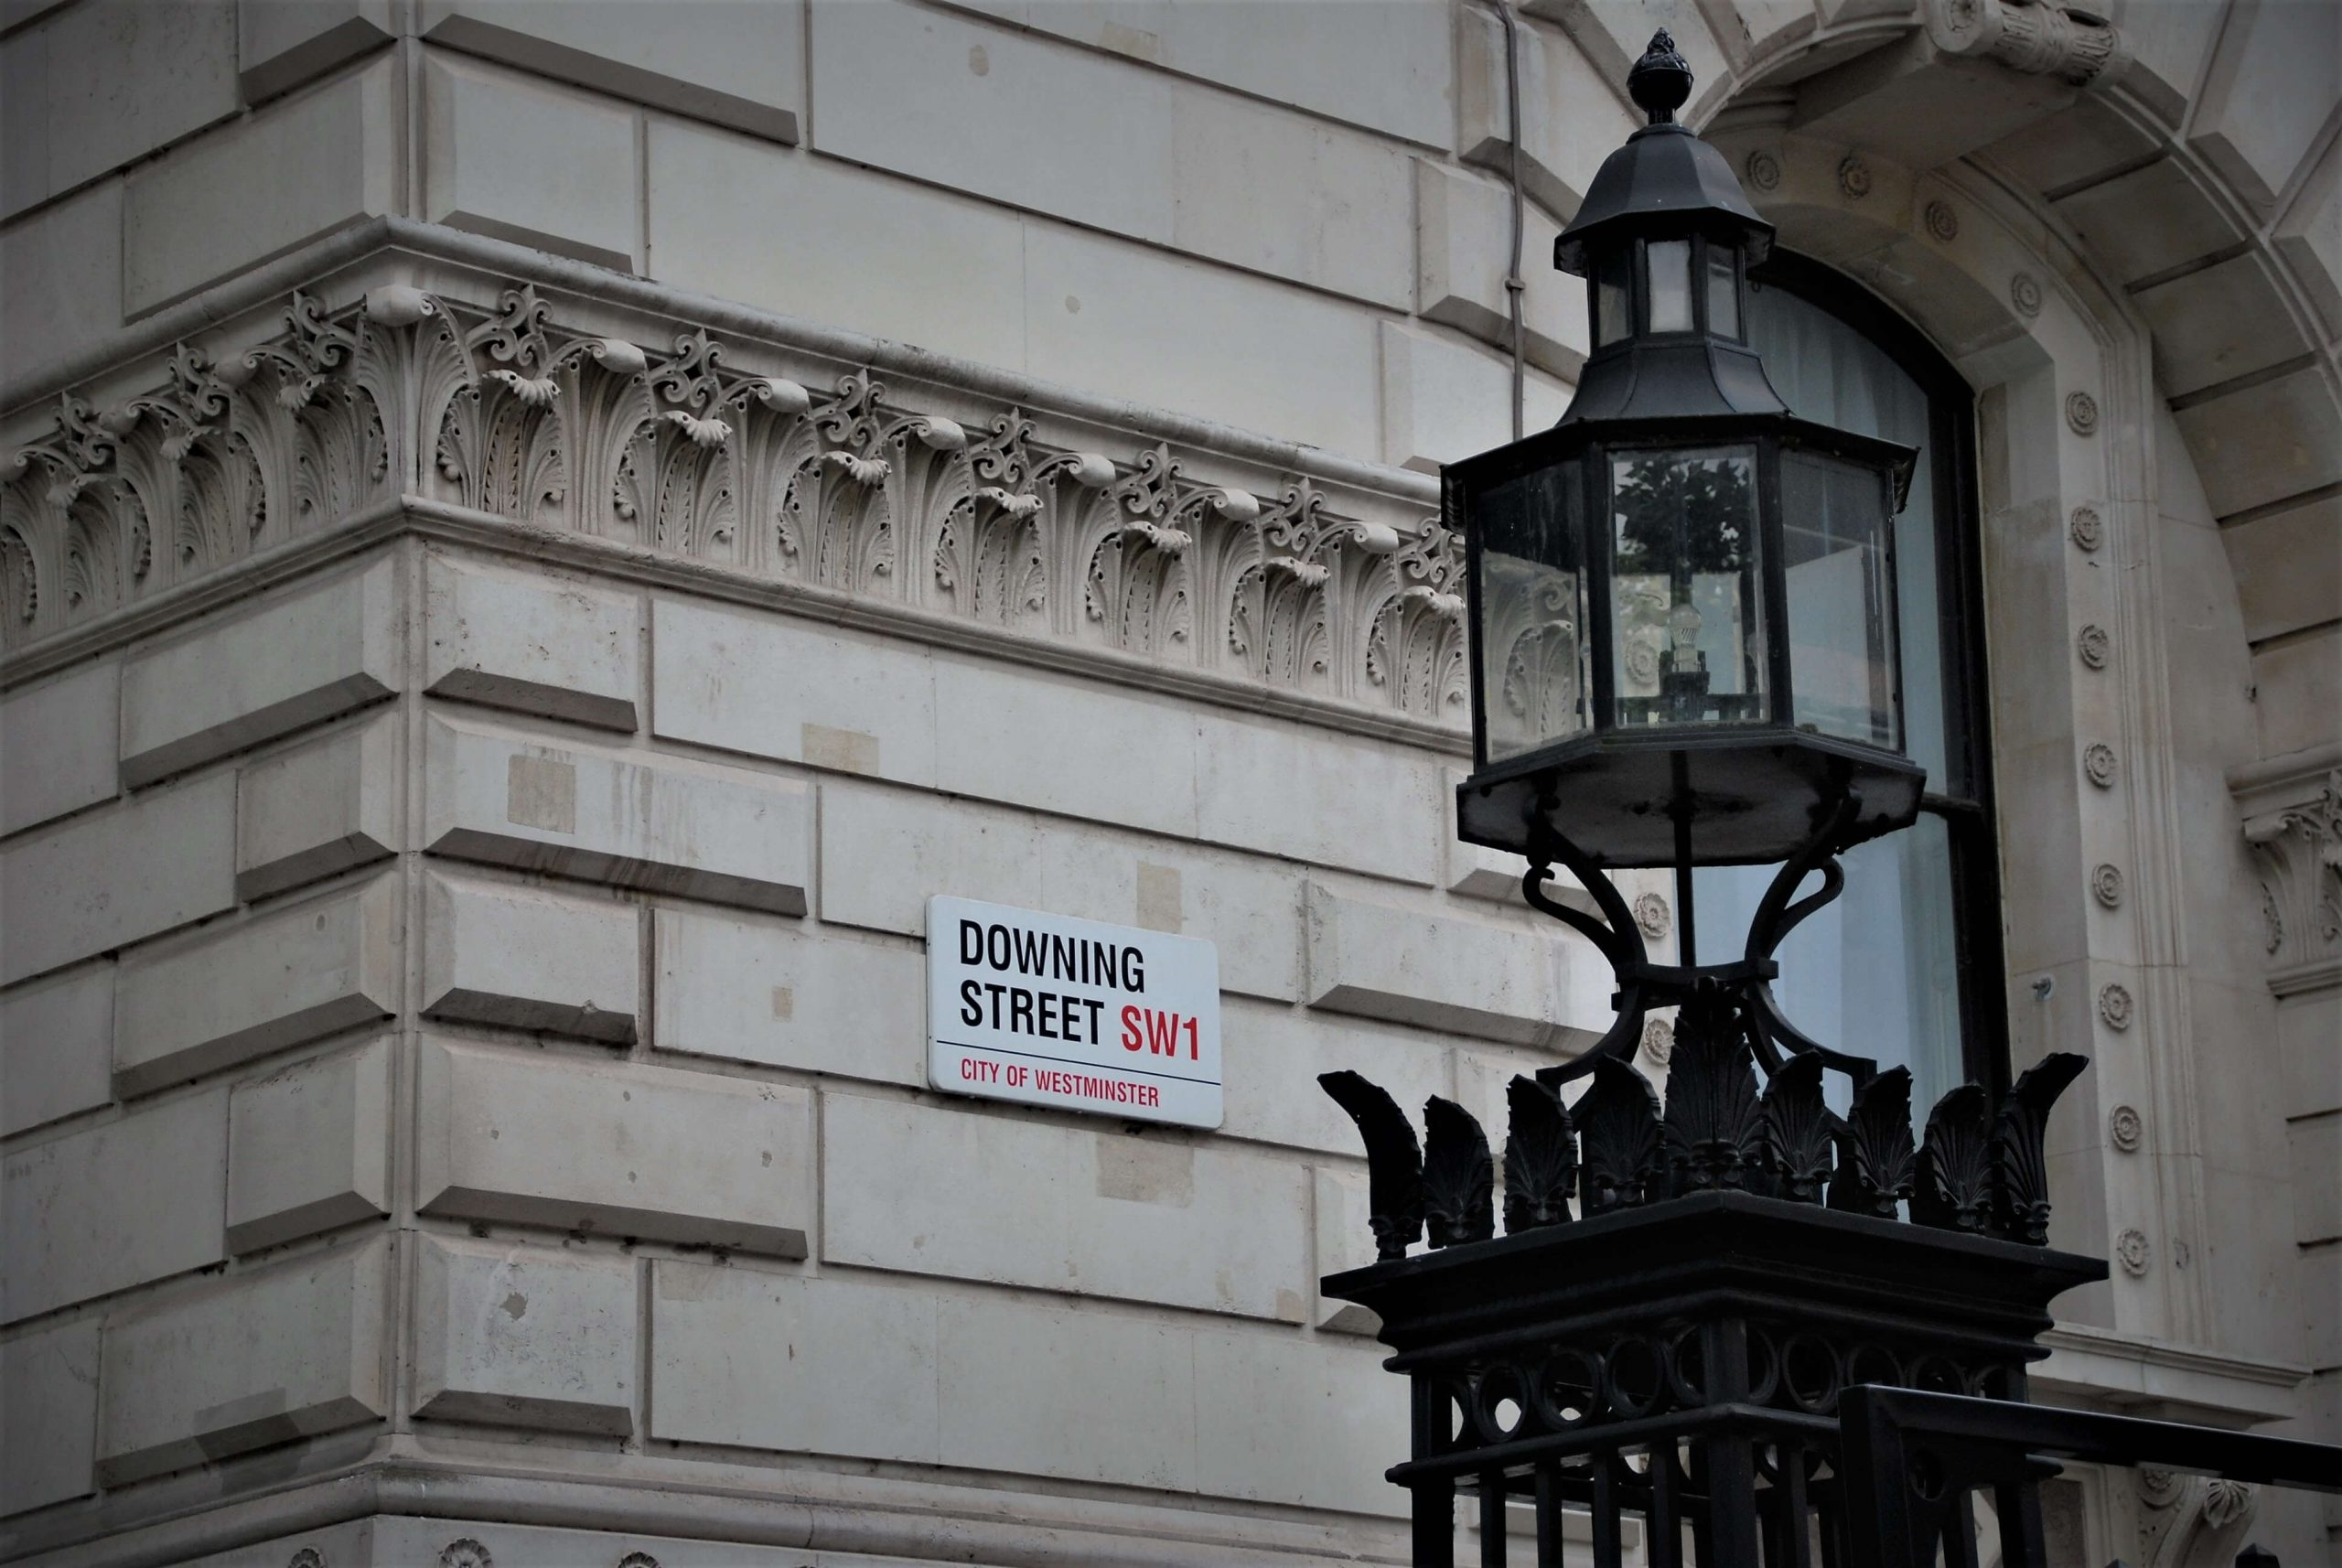 Downing Street sign with a lamp post in front of it